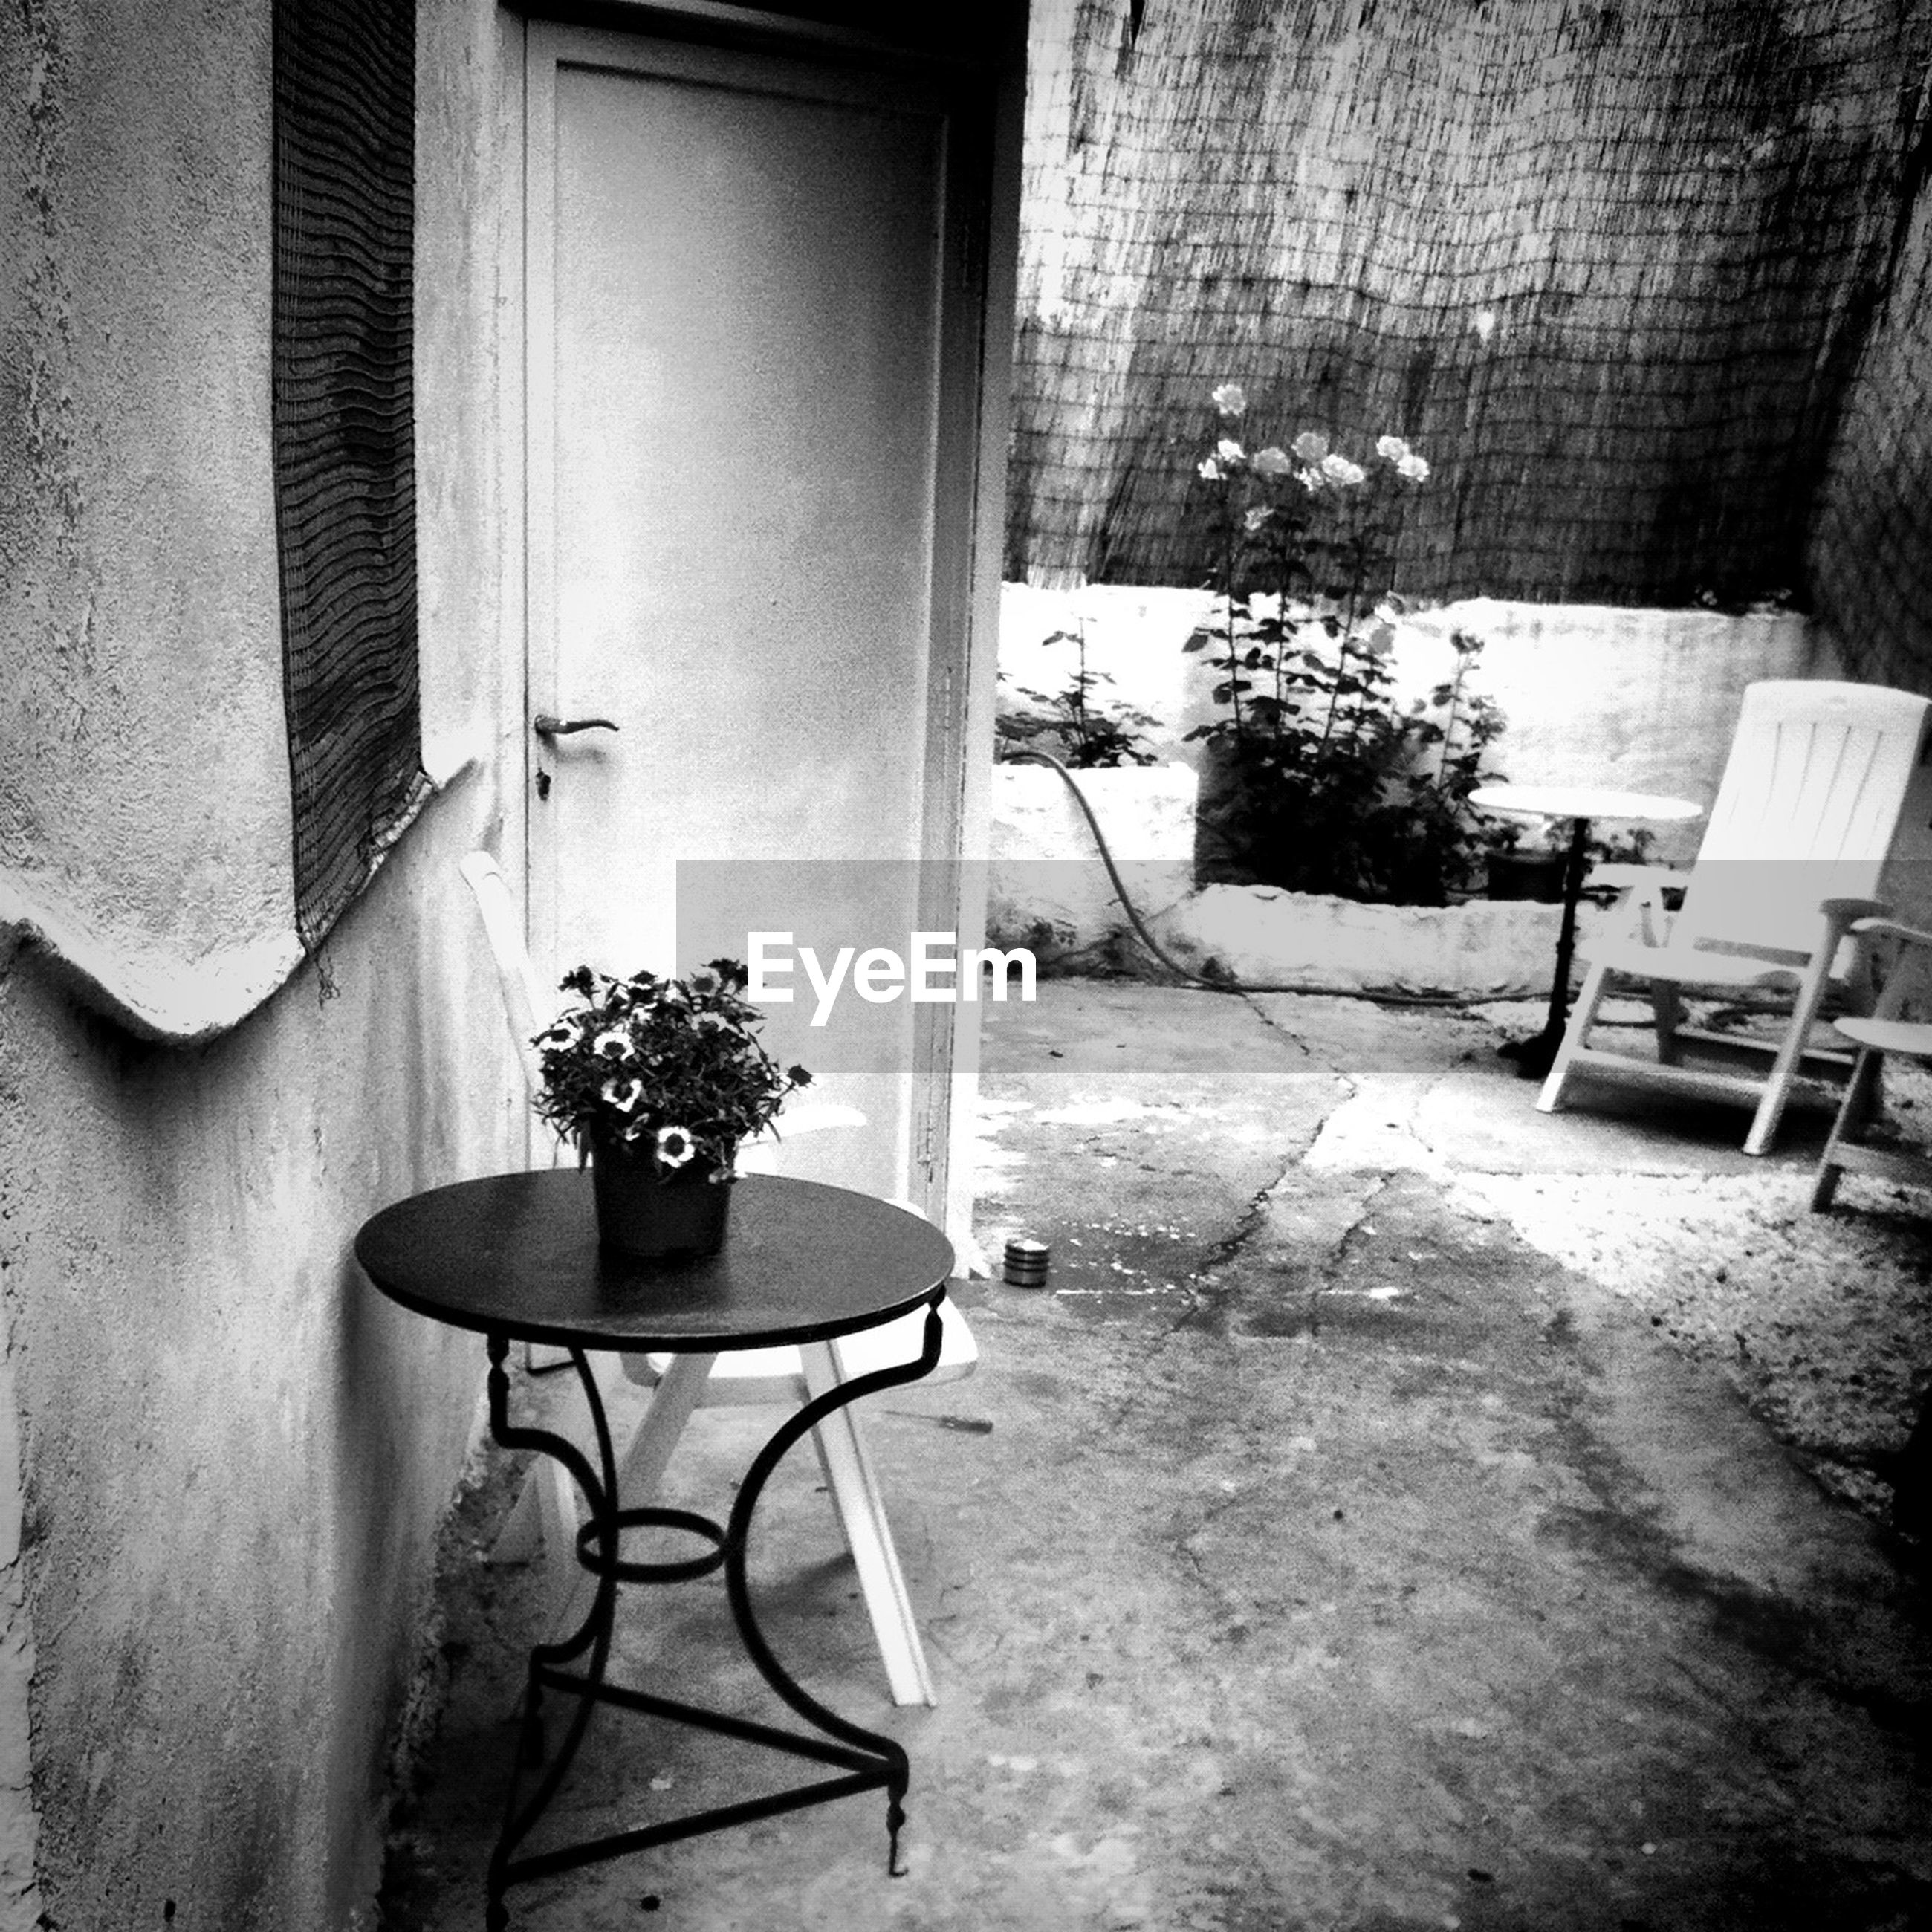 chair, table, potted plant, absence, indoors, empty, architecture, house, built structure, window, furniture, vase, flower pot, plant, seat, home interior, wall - building feature, no people, flower, sunlight